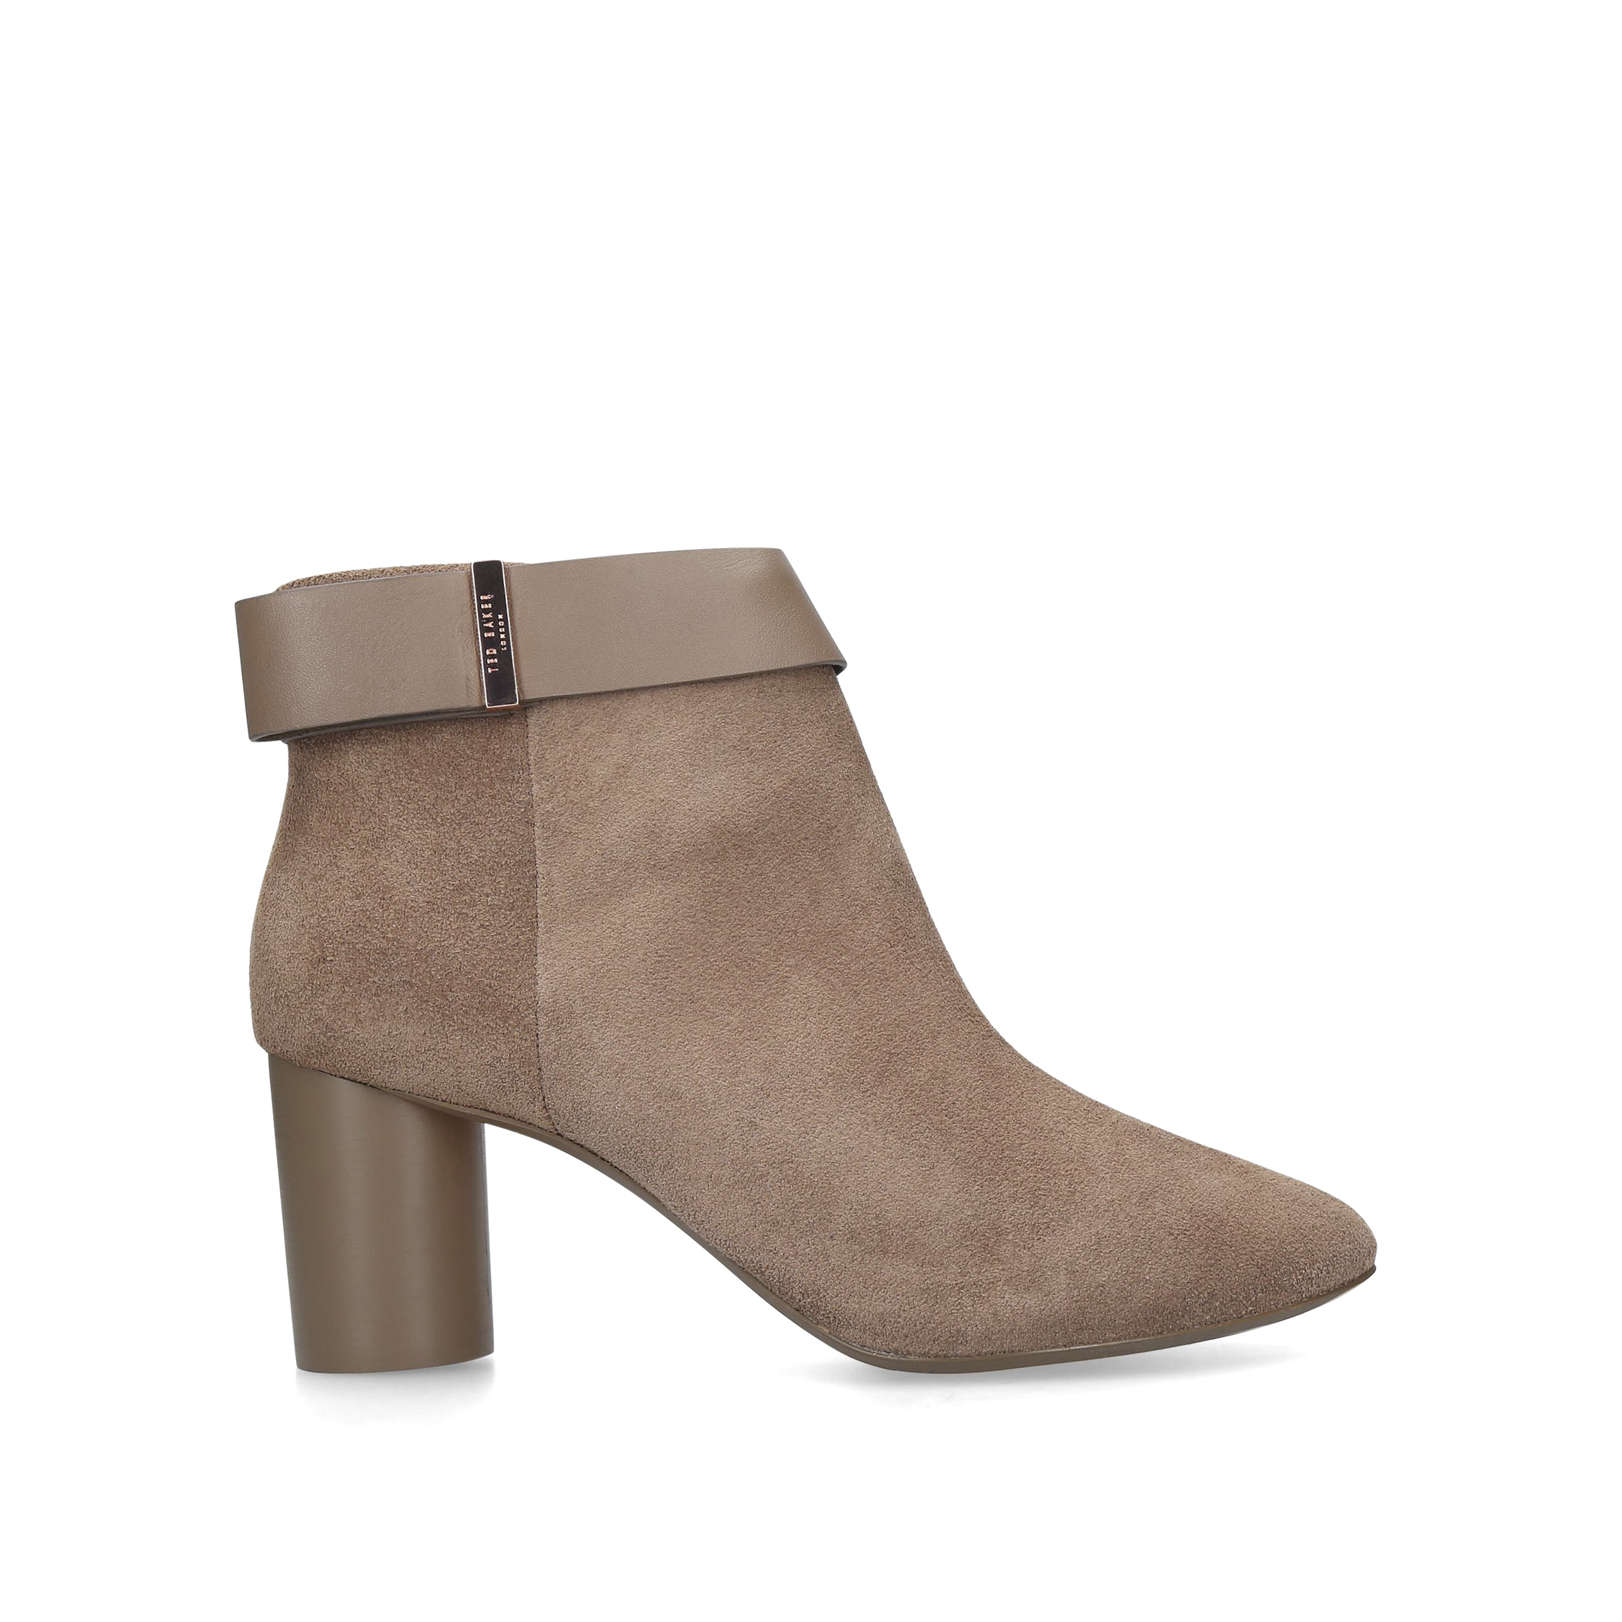 f44ef3bce062 MHARIA MHARIA TED BAKER TAUPE ANKLE HEELED BOOTS shoe boots by TED BAKER